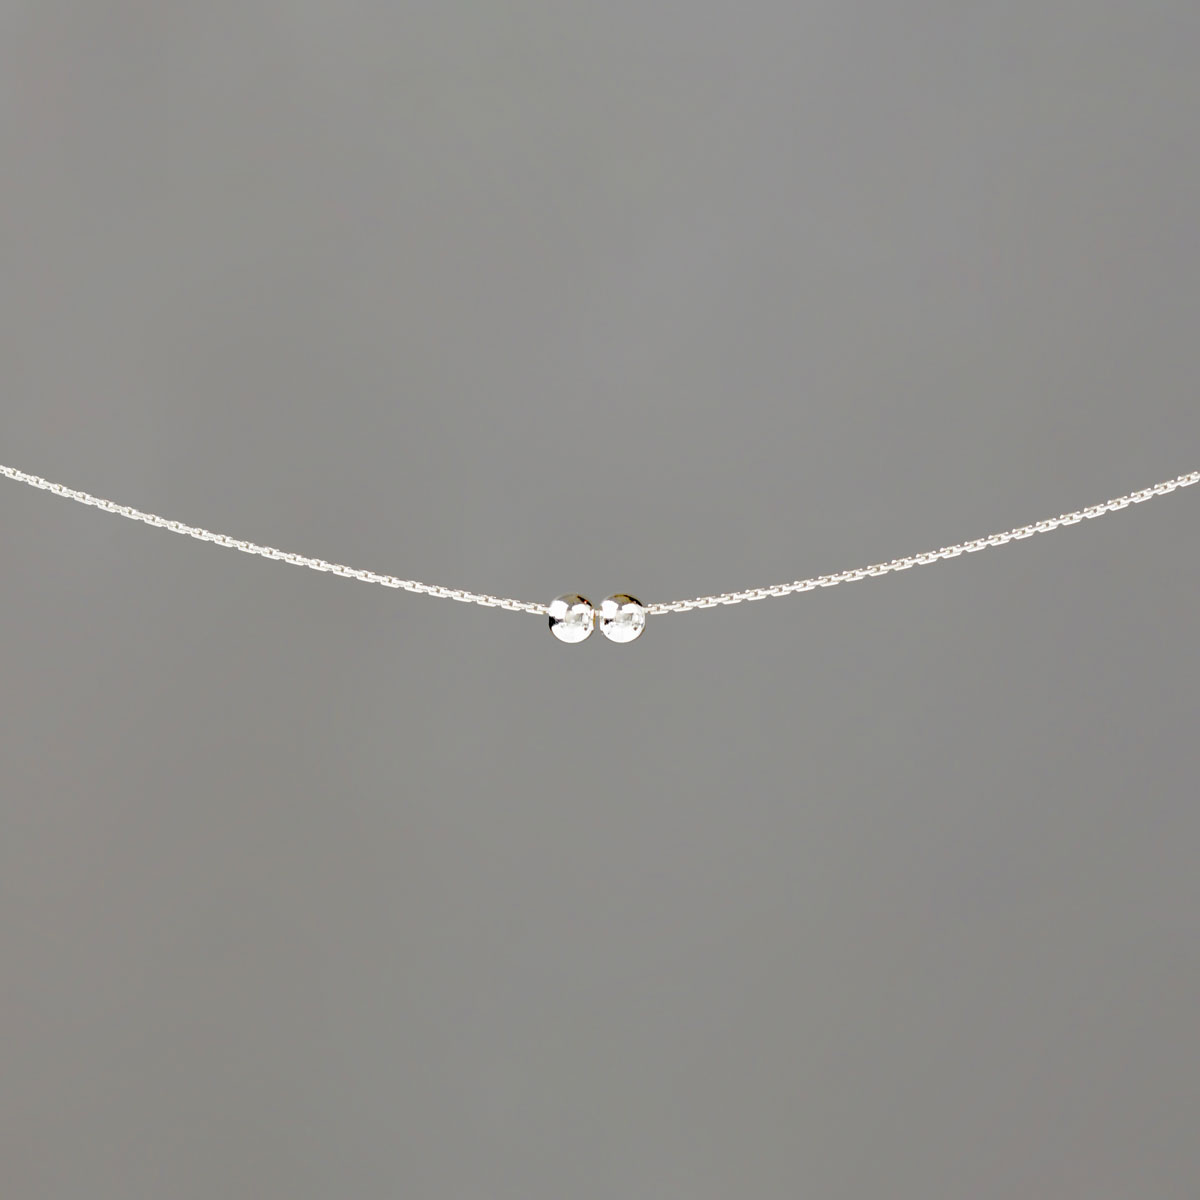 Small Balls on Silver Stringing Chain Necklace